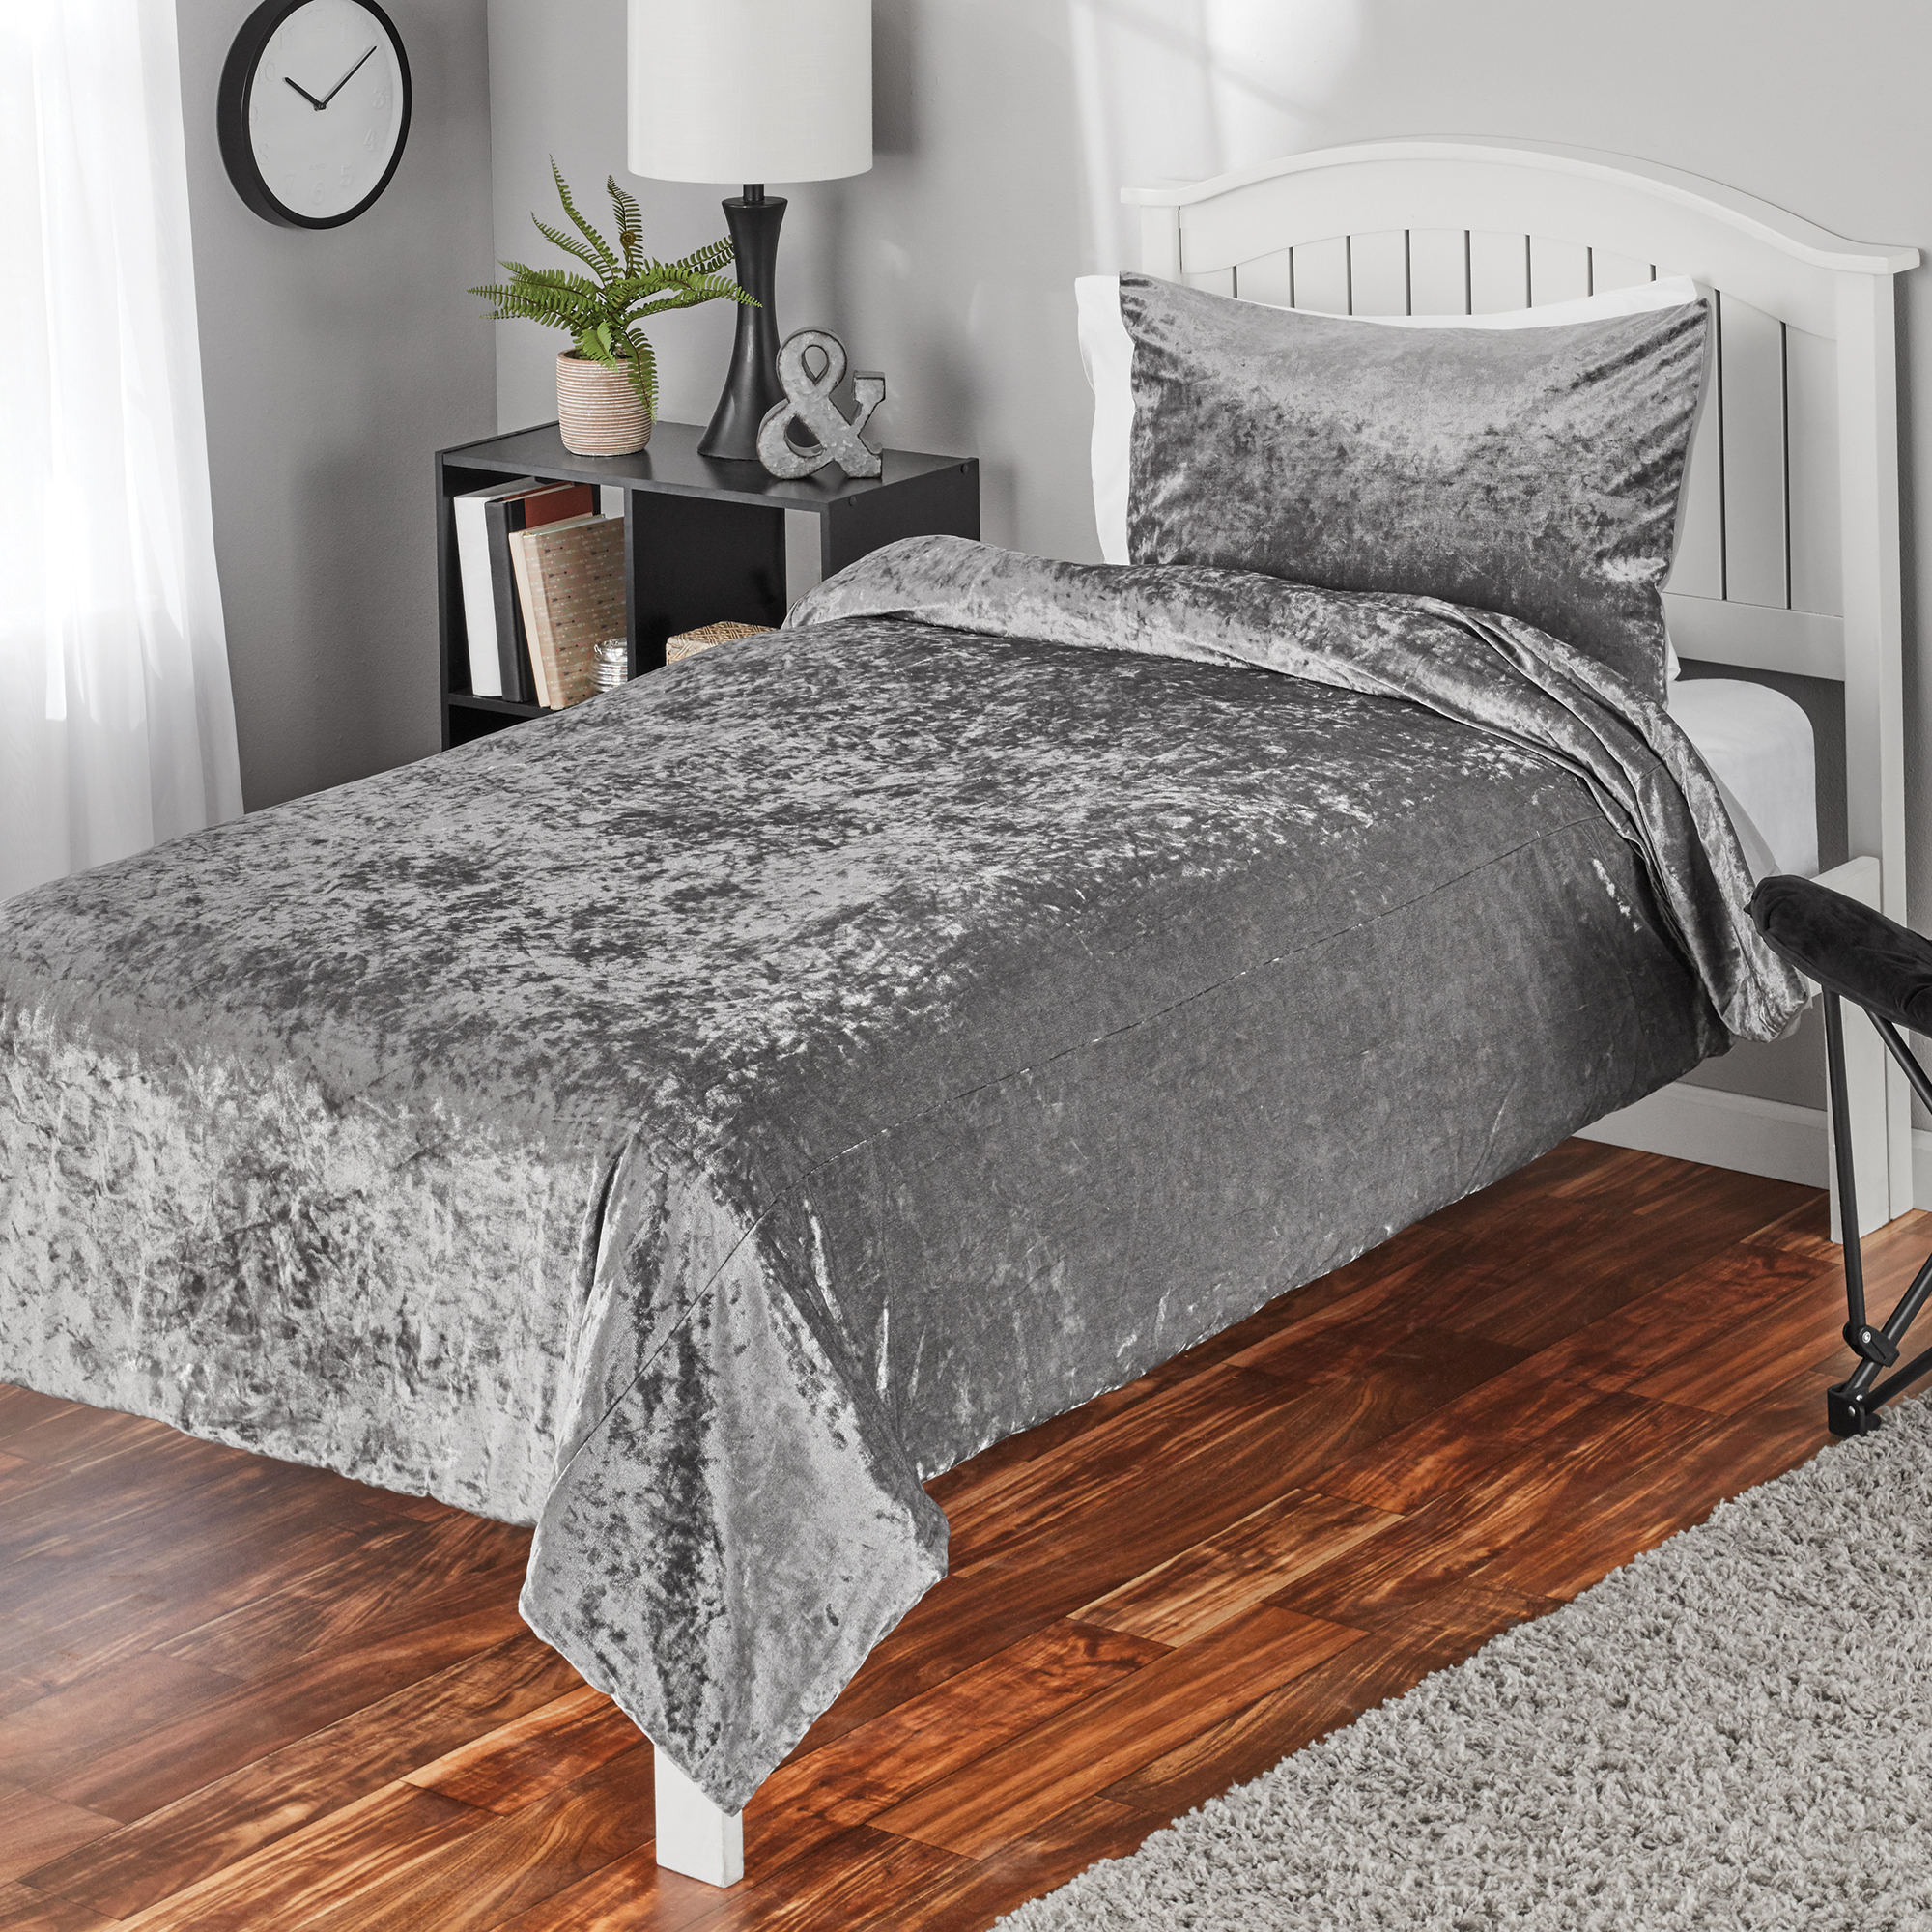 Mainstays Crushed Velvet Twin or Twin XL Comforter Mini Set, 2 Piece